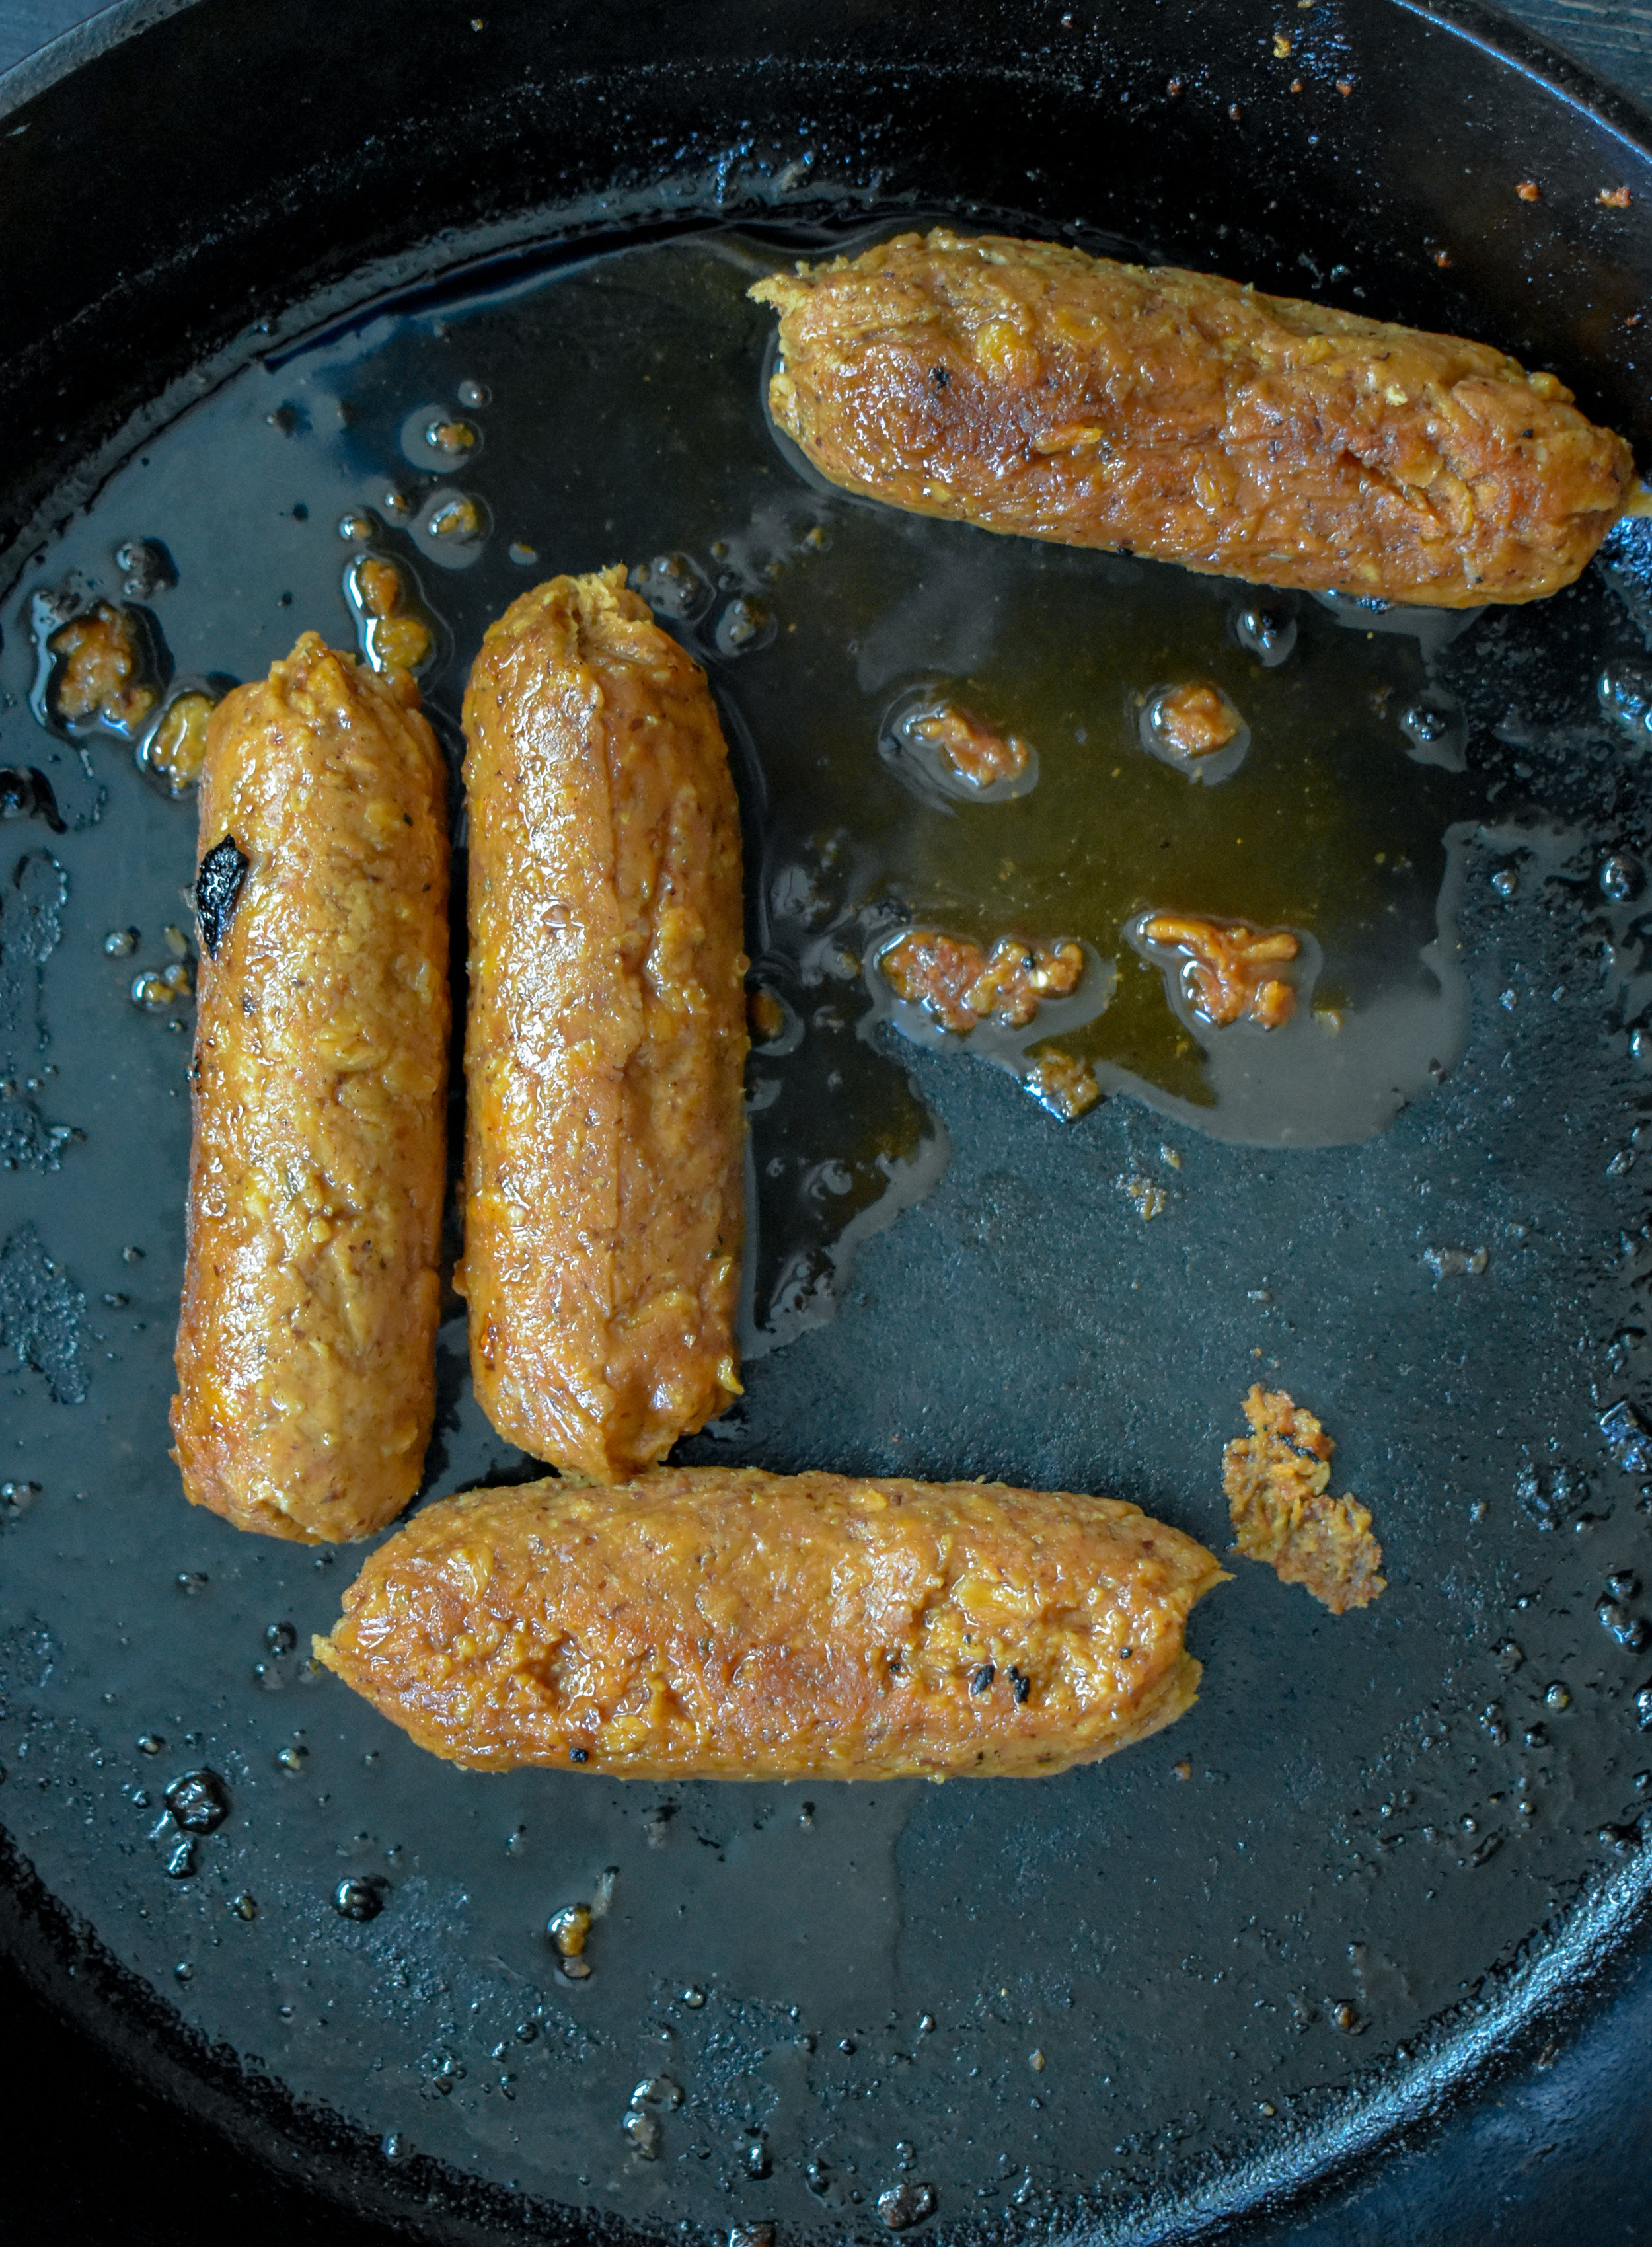 1. Cook vegan dogs in frying pan with 6-8oz beer for 8-10 minutes until beer has mostly evaporated.